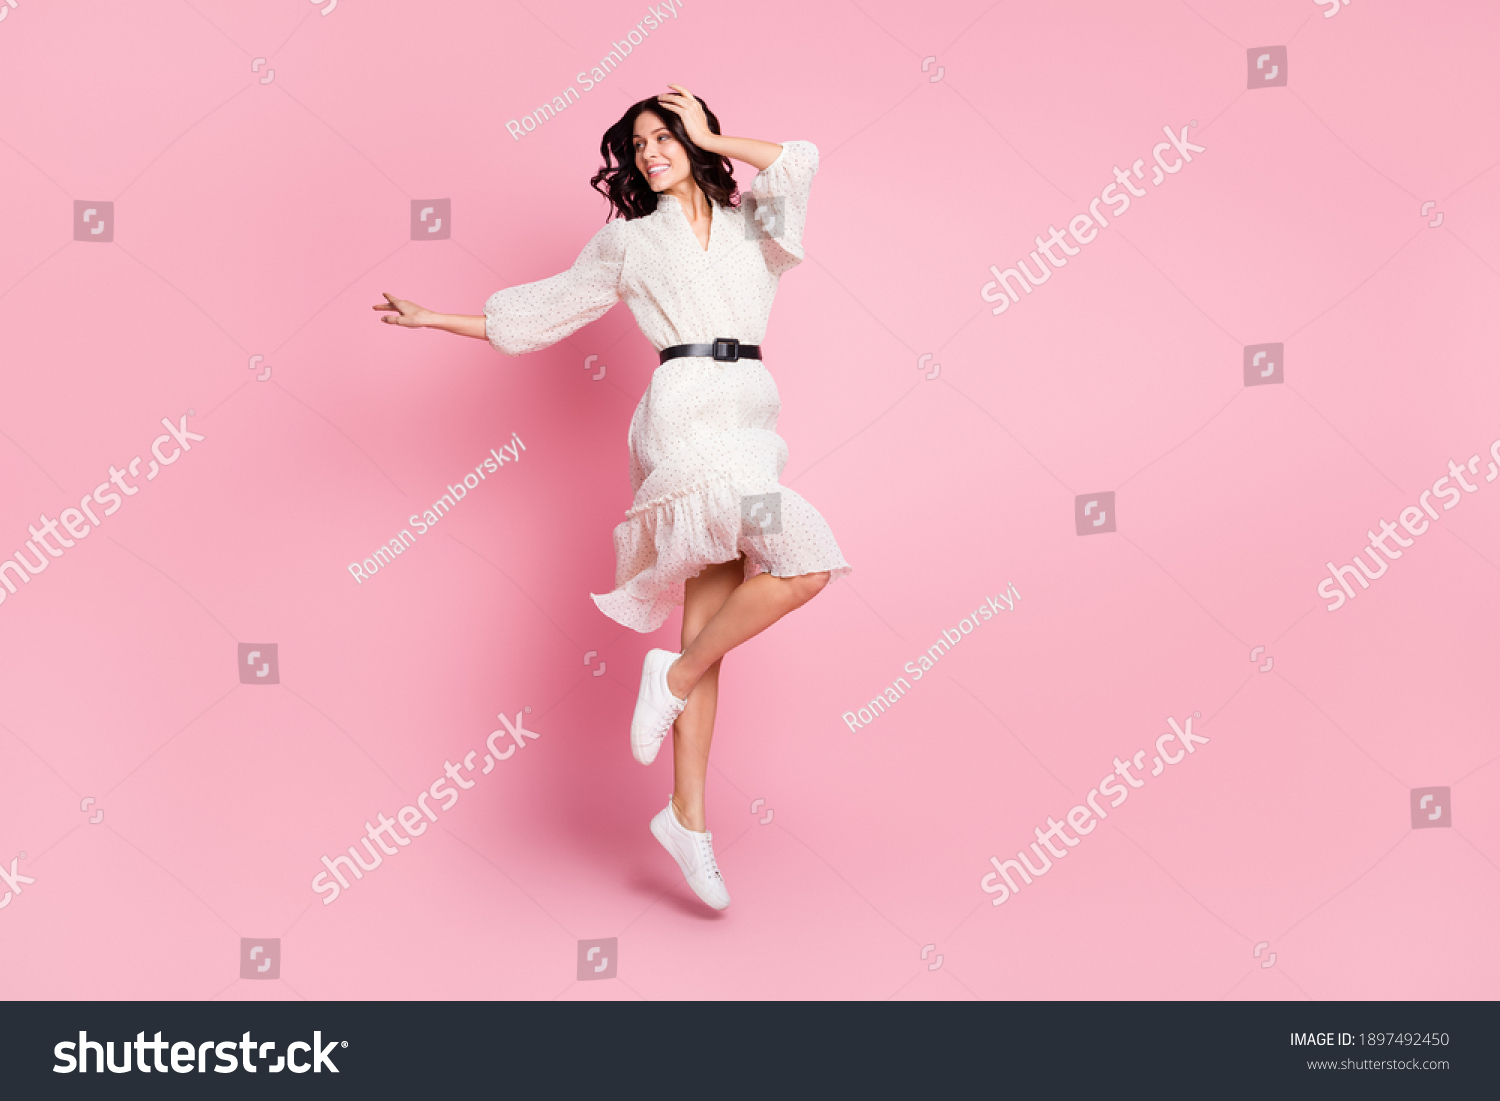 Full length body size photo of cheerful woman in long dress jumping looking empty space isolated pastel pink color background #1897492450